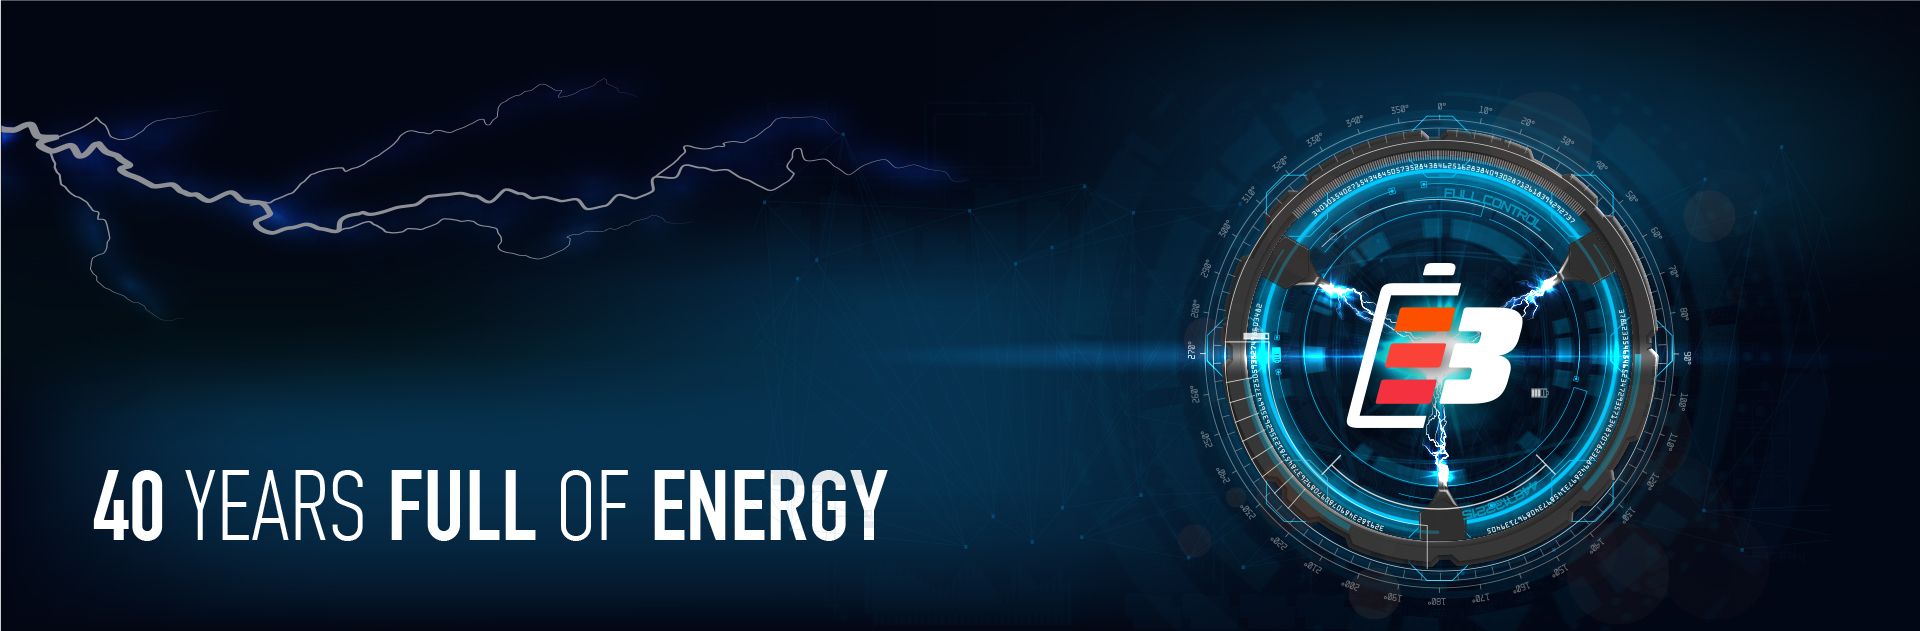 for than 40 years we do, what gives you energy